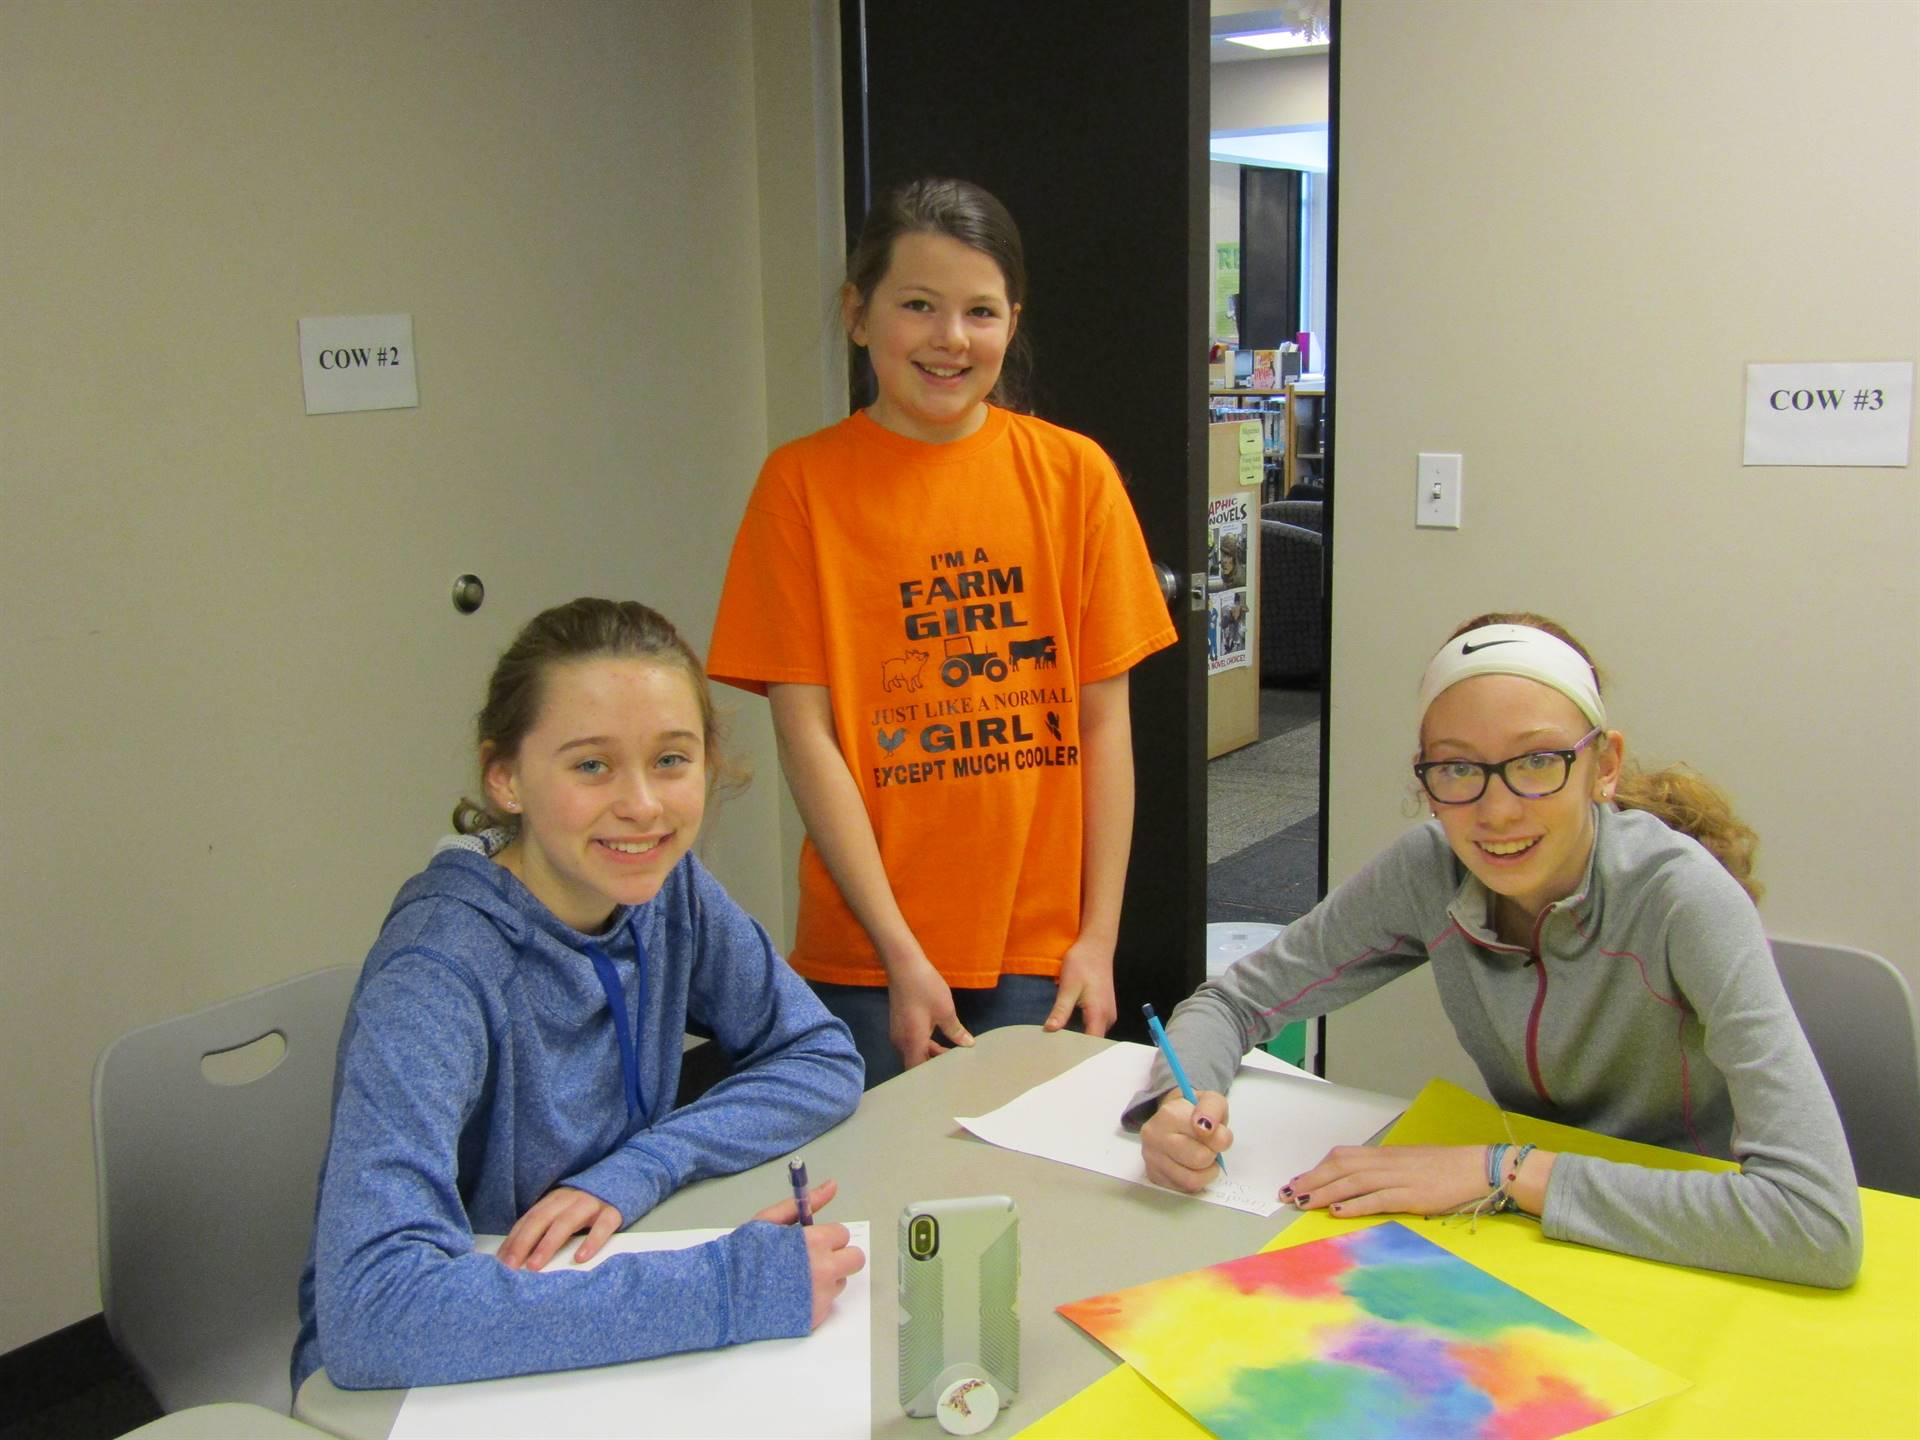 middle school students create posters of positivity